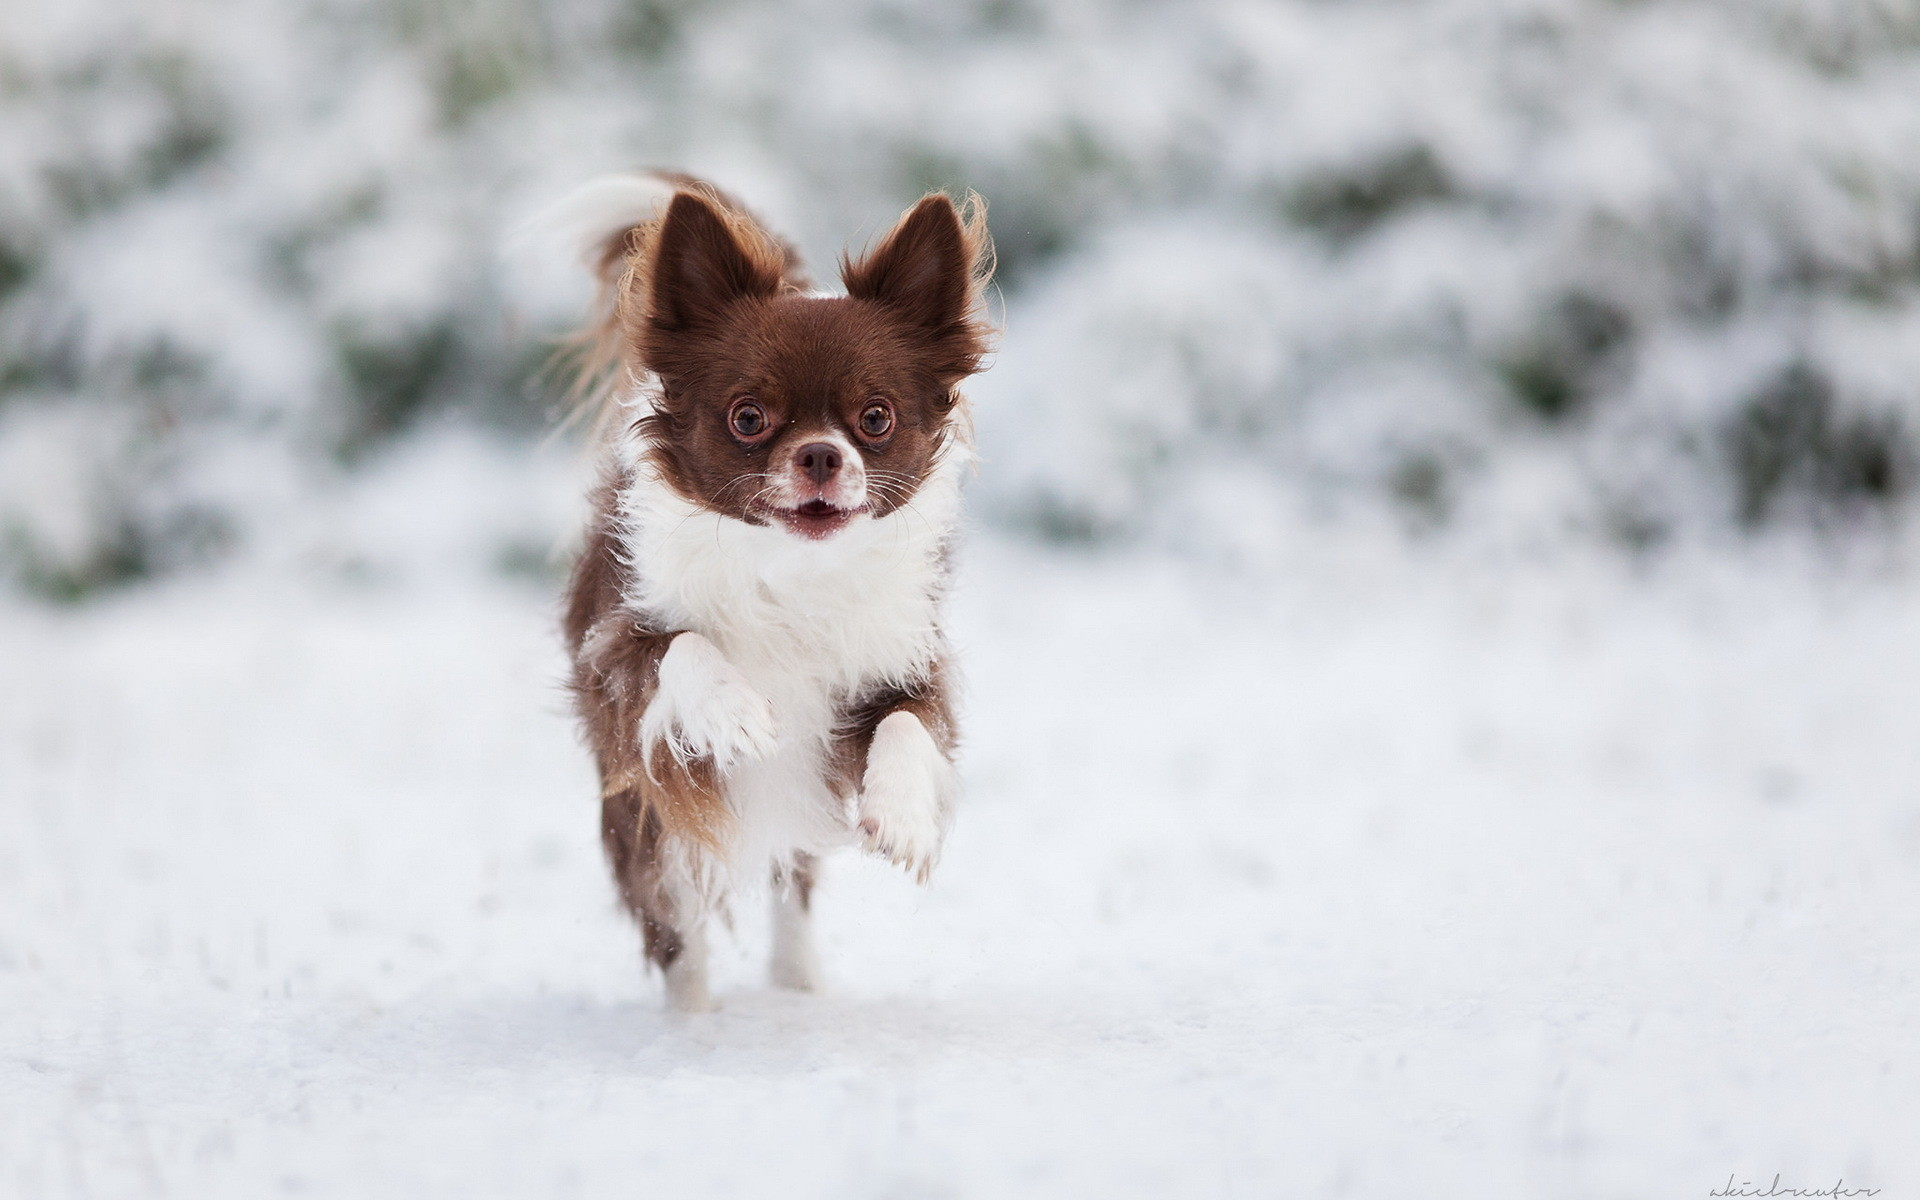 Res: 1920x1200, Wallpapers Chihuahua Dogs Running Snow Animals Run